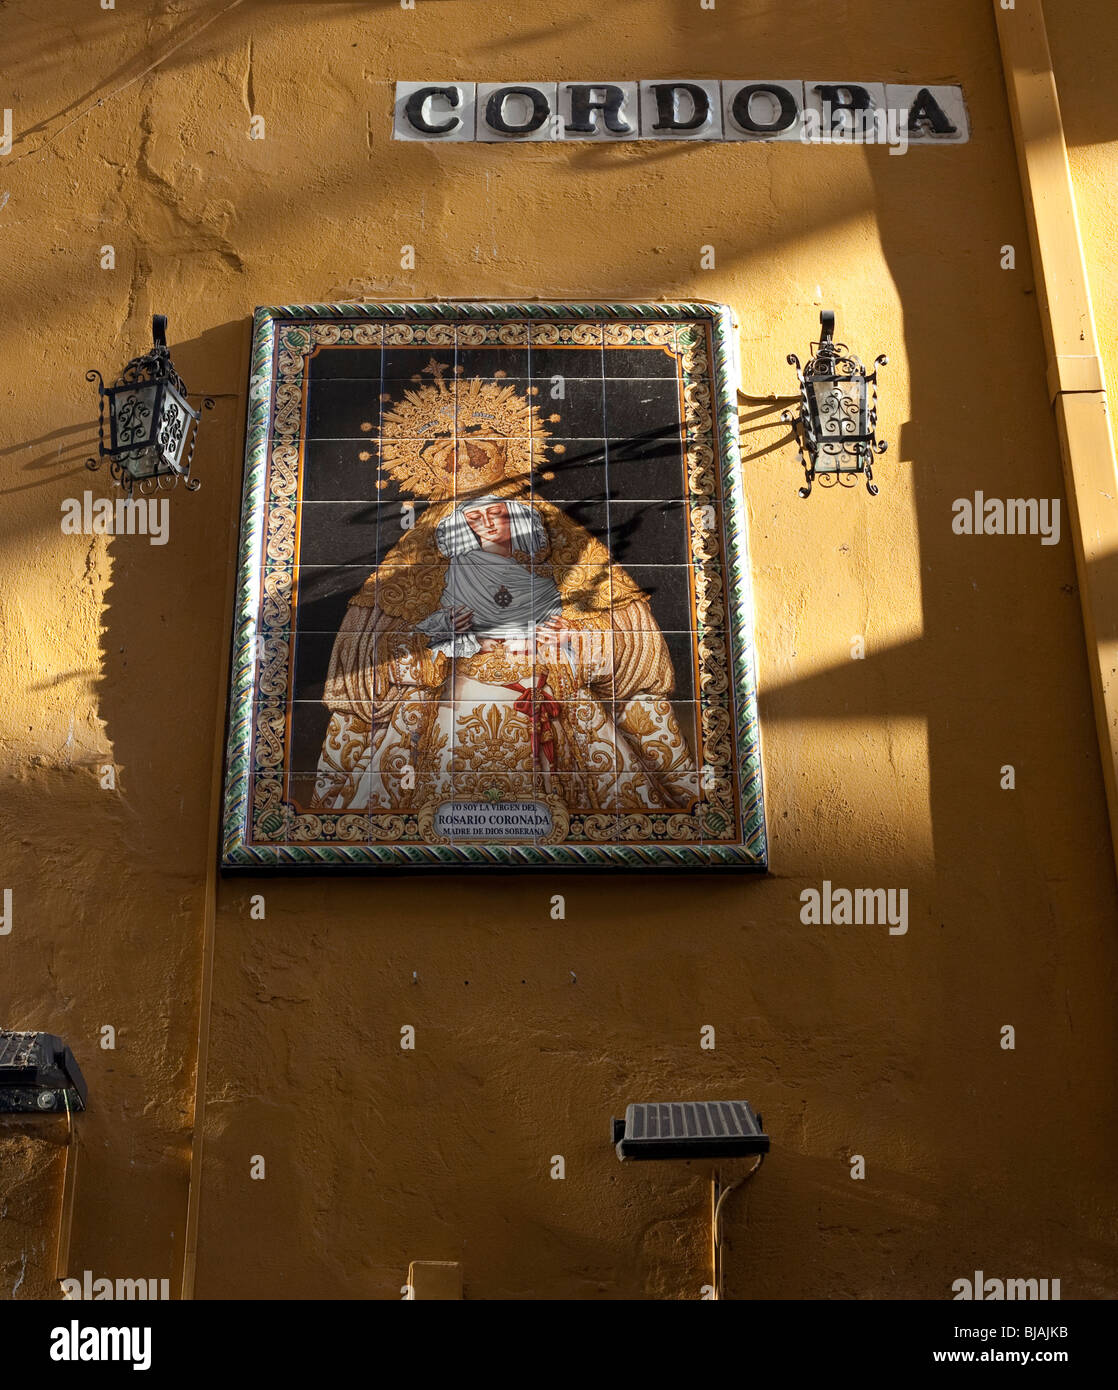 streetsign spelling out cordoba and tiled picture of religious icon on yellow wall in spain Stock Photo